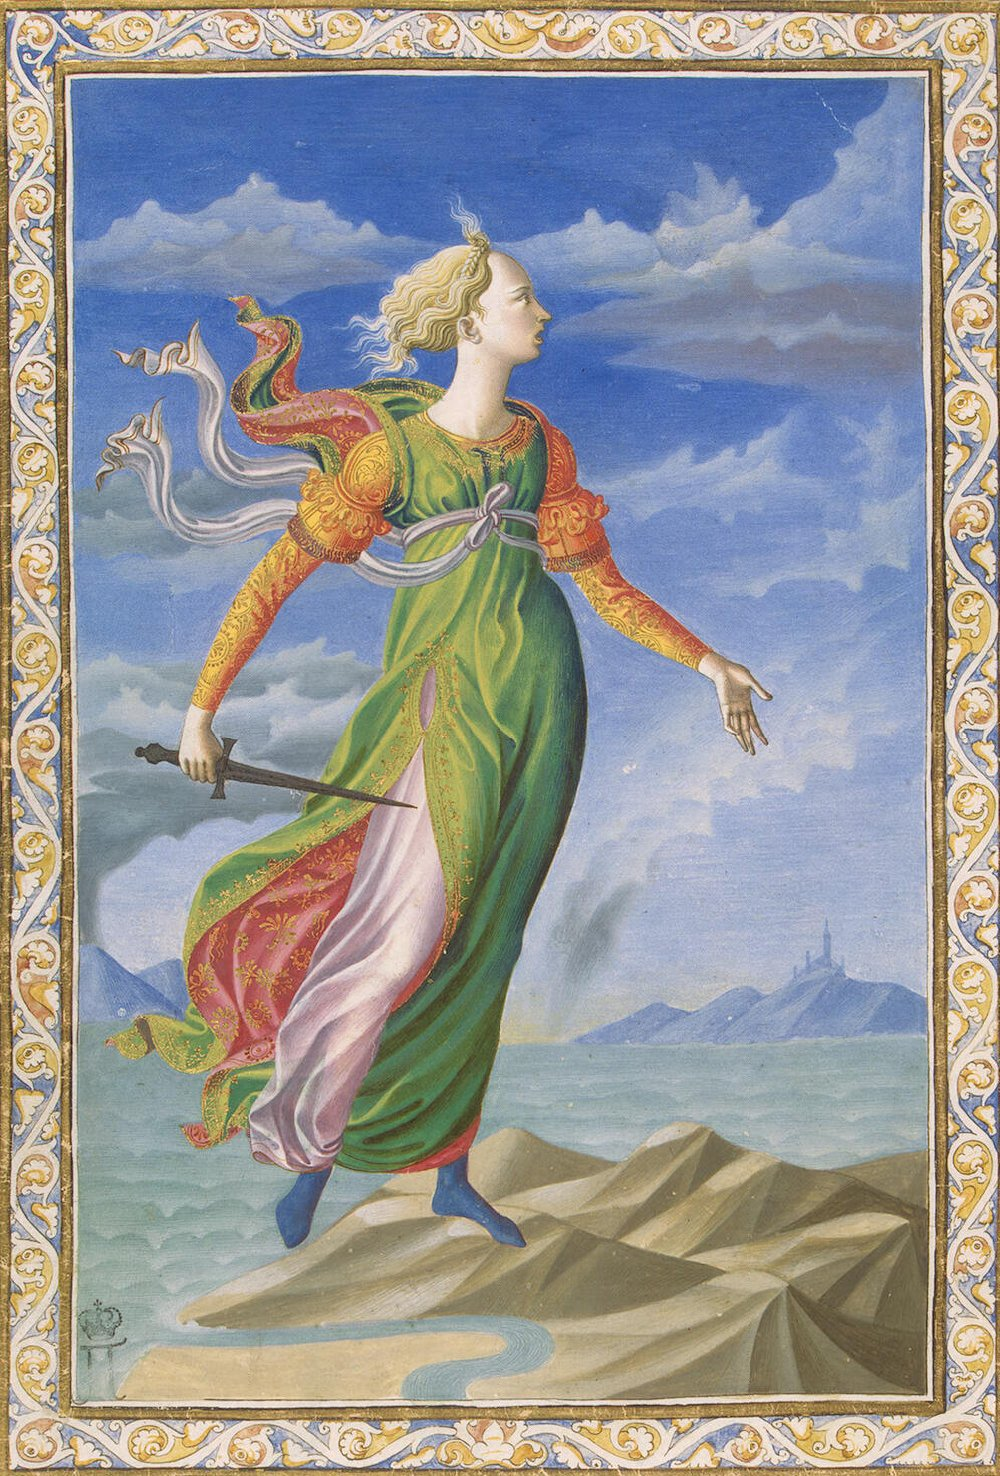 The painting  Allegory of Carthage  by Francesco di Stefano.